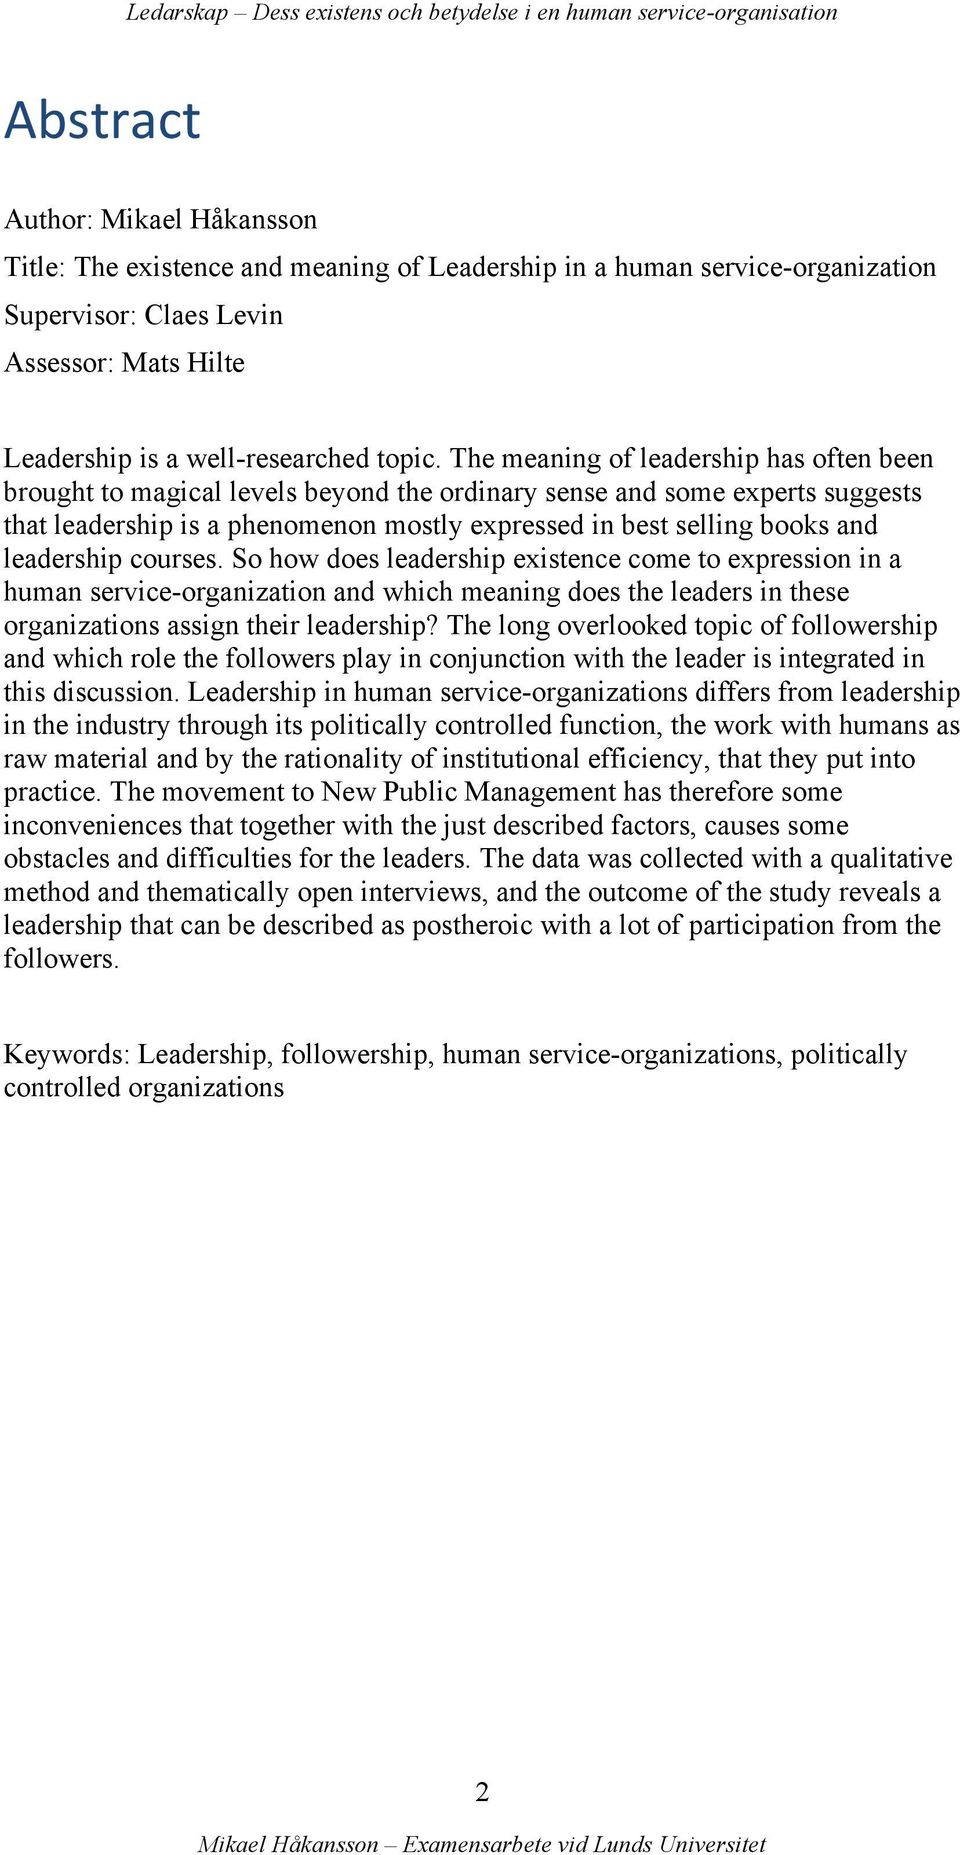 leadership courses. So how does leadership existence come to expression in a human service-organization and which meaning does the leaders in these organizations assign their leadership?